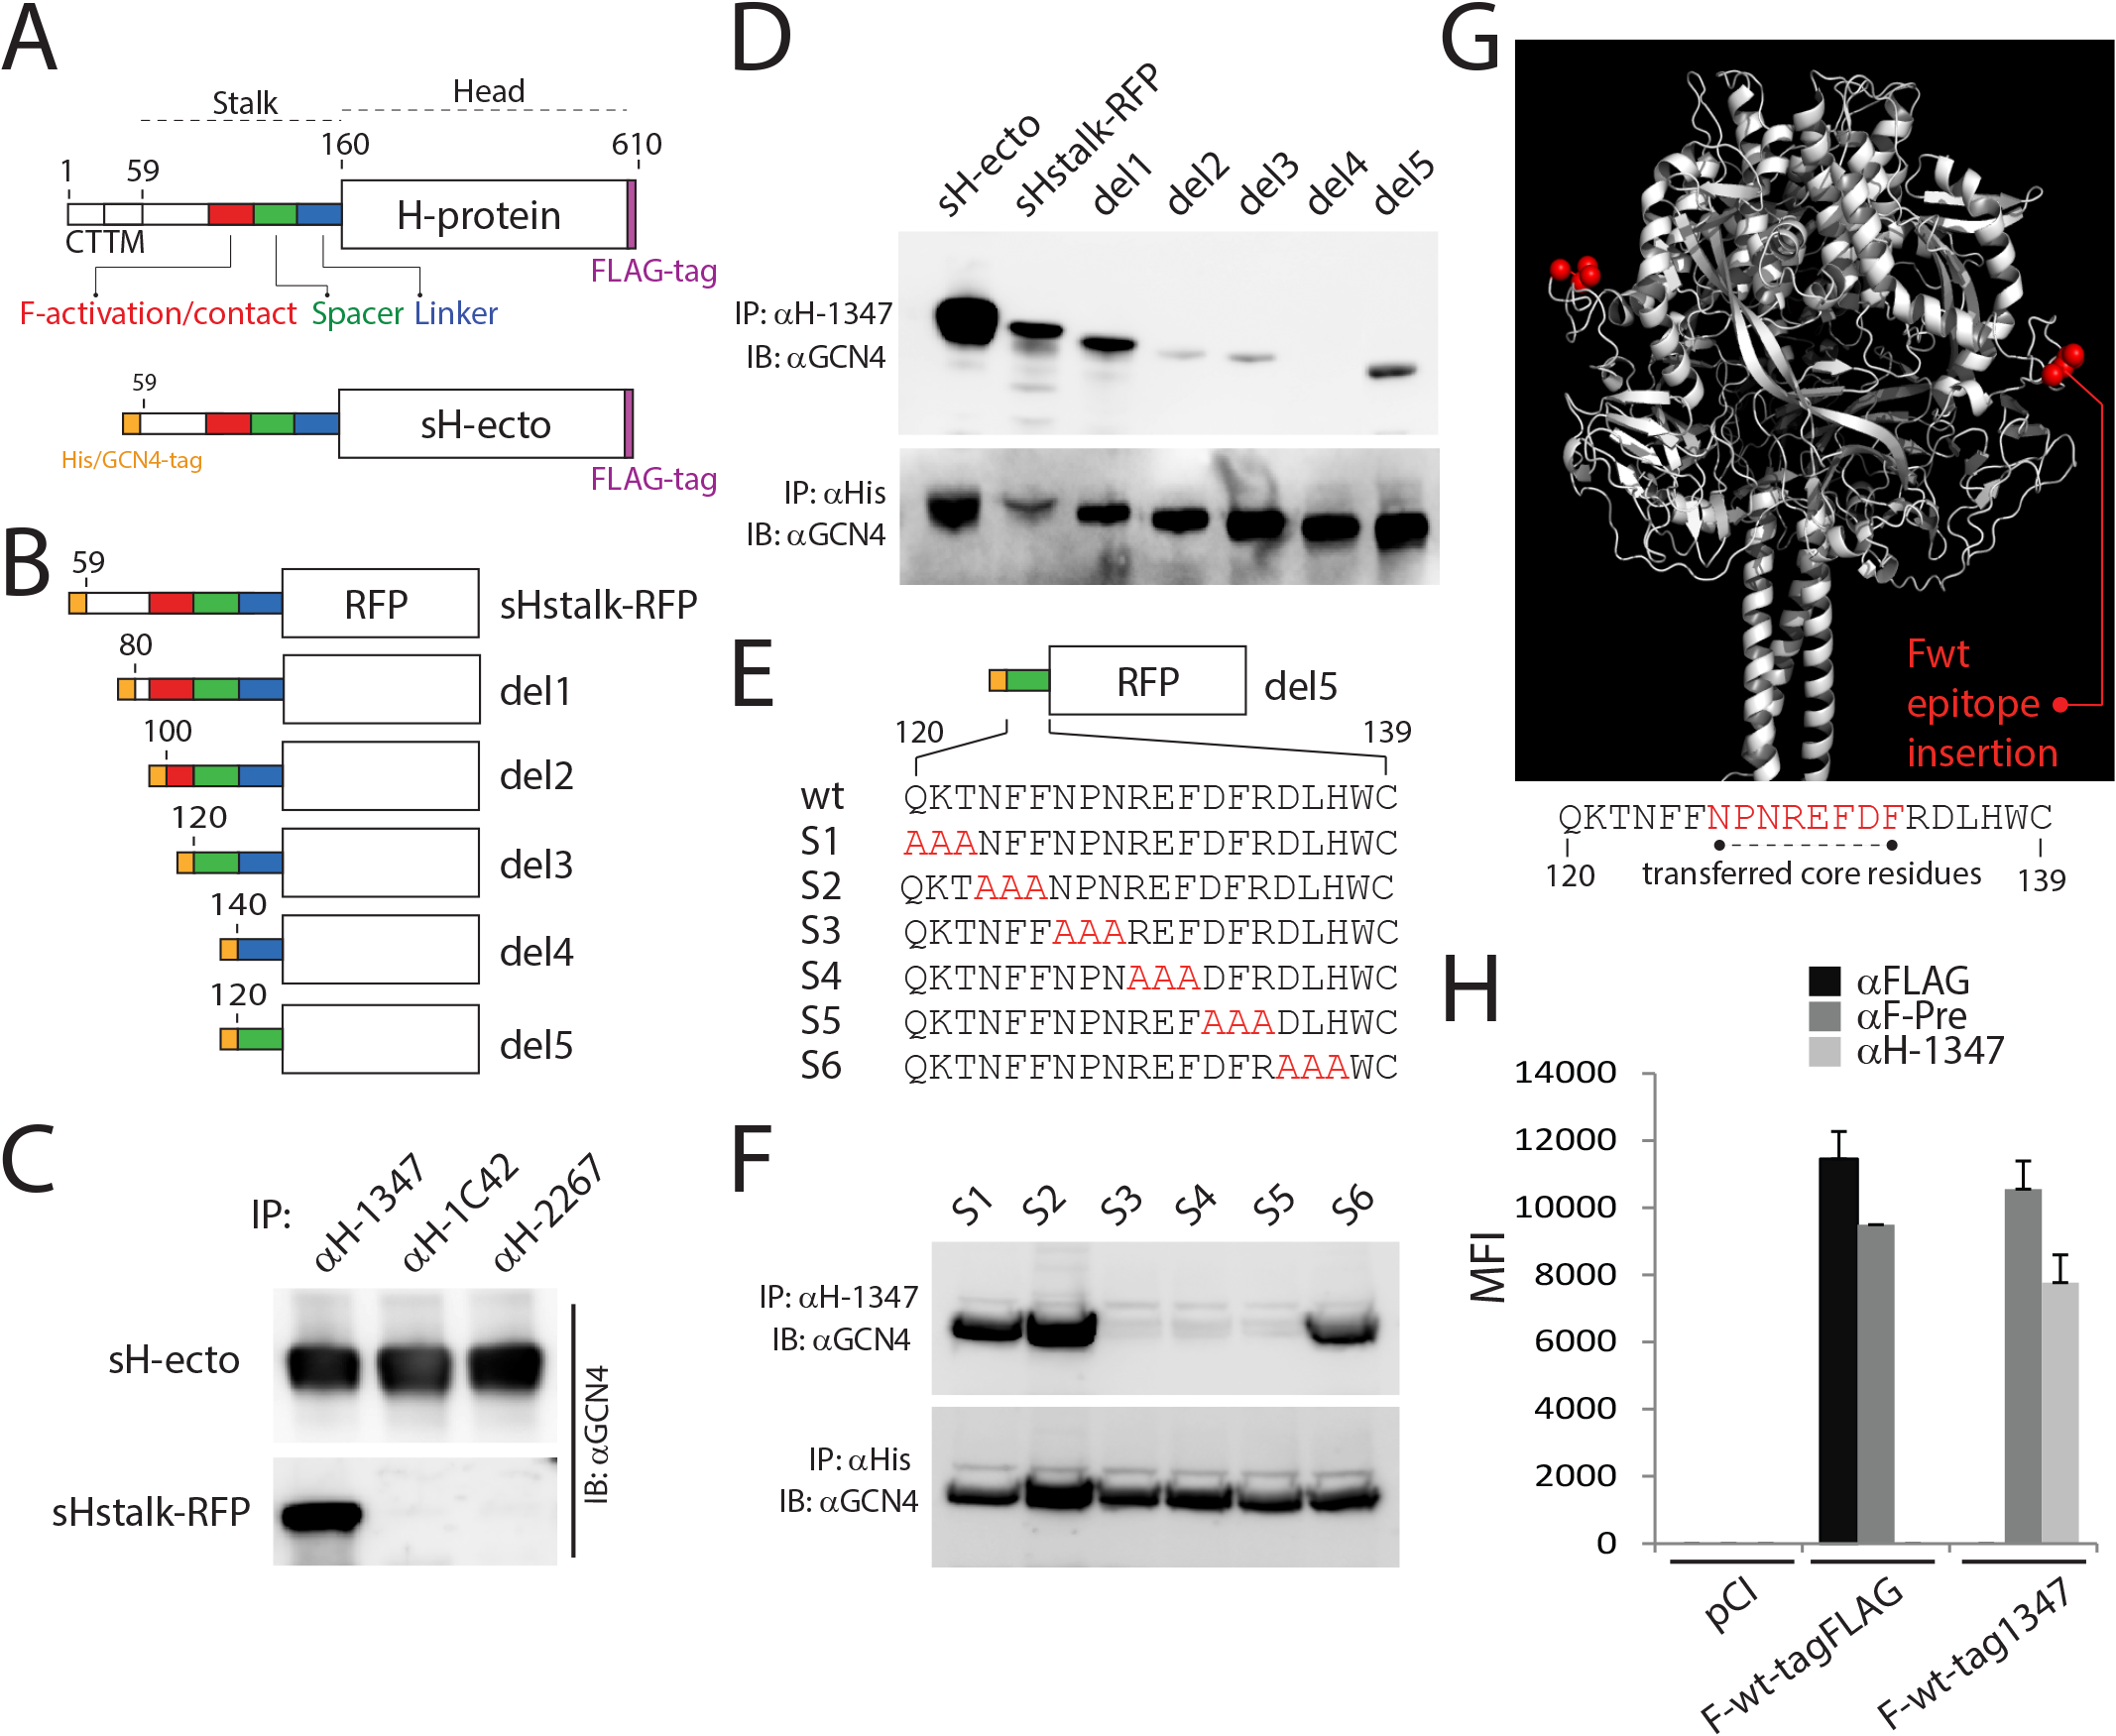 mAb αH-1347 epitope mapping.